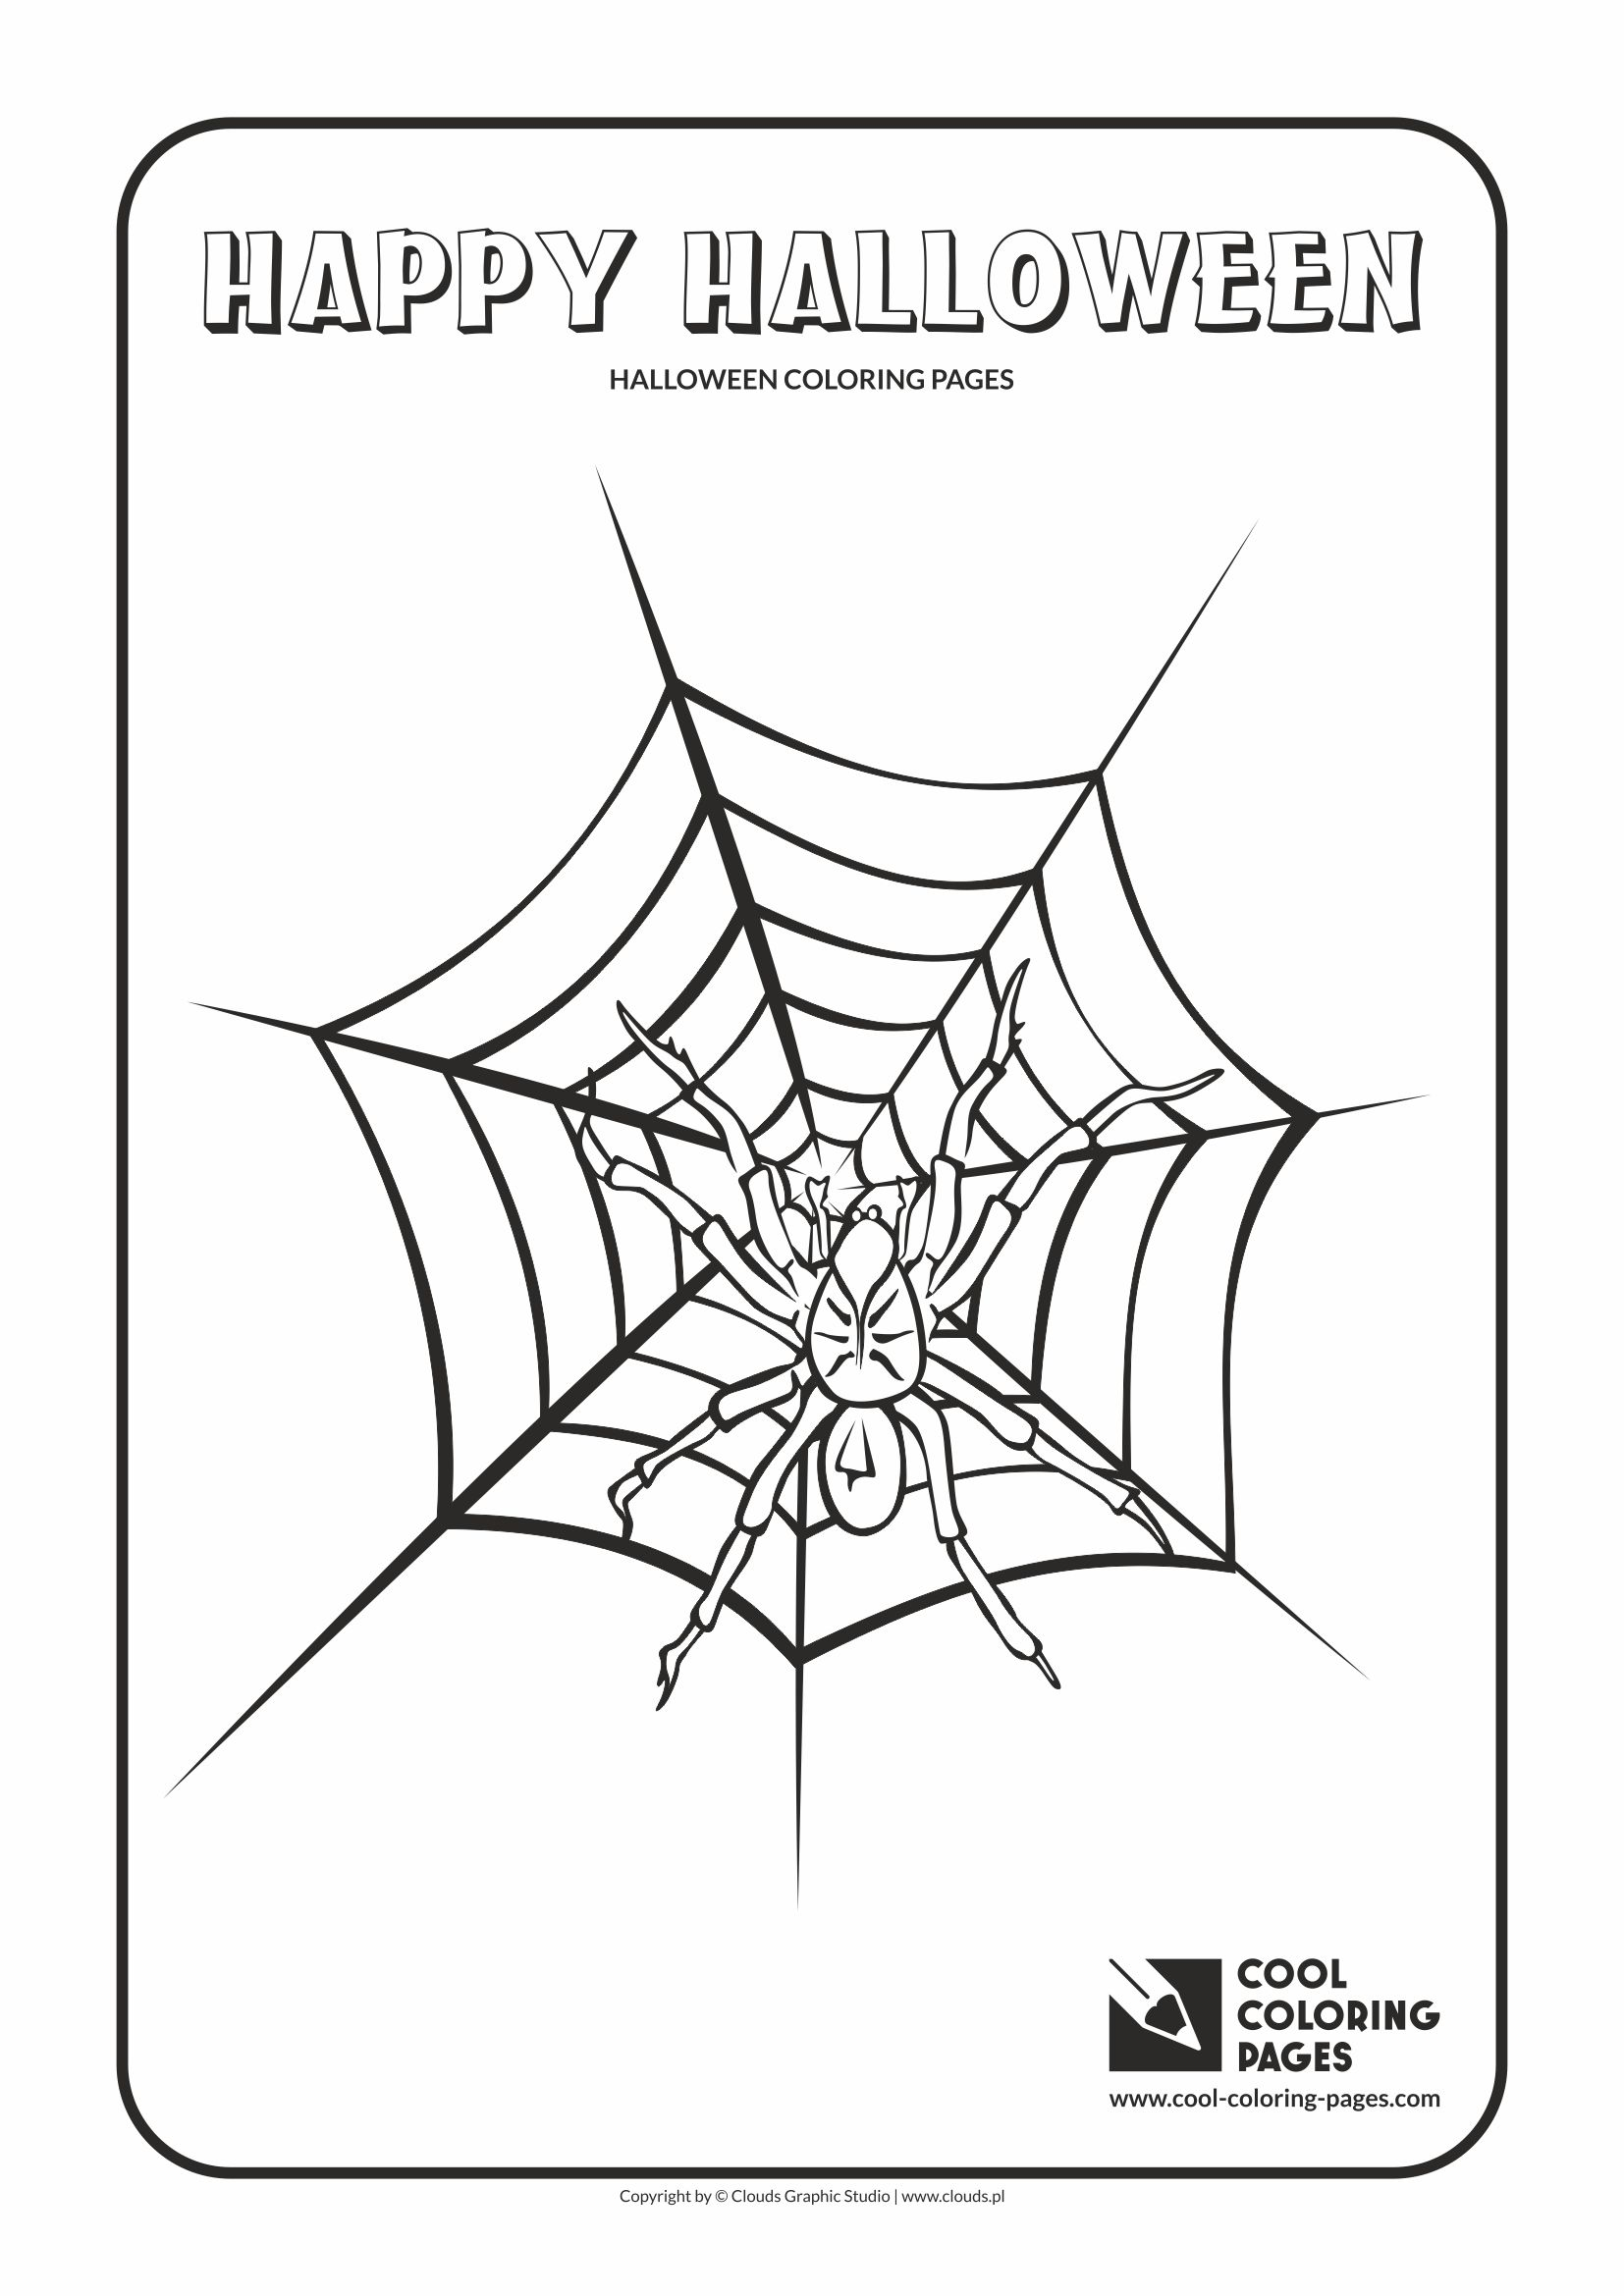 Cool Coloring Pages - Holidays / Halloween spider / Coloring page with Halloween spider